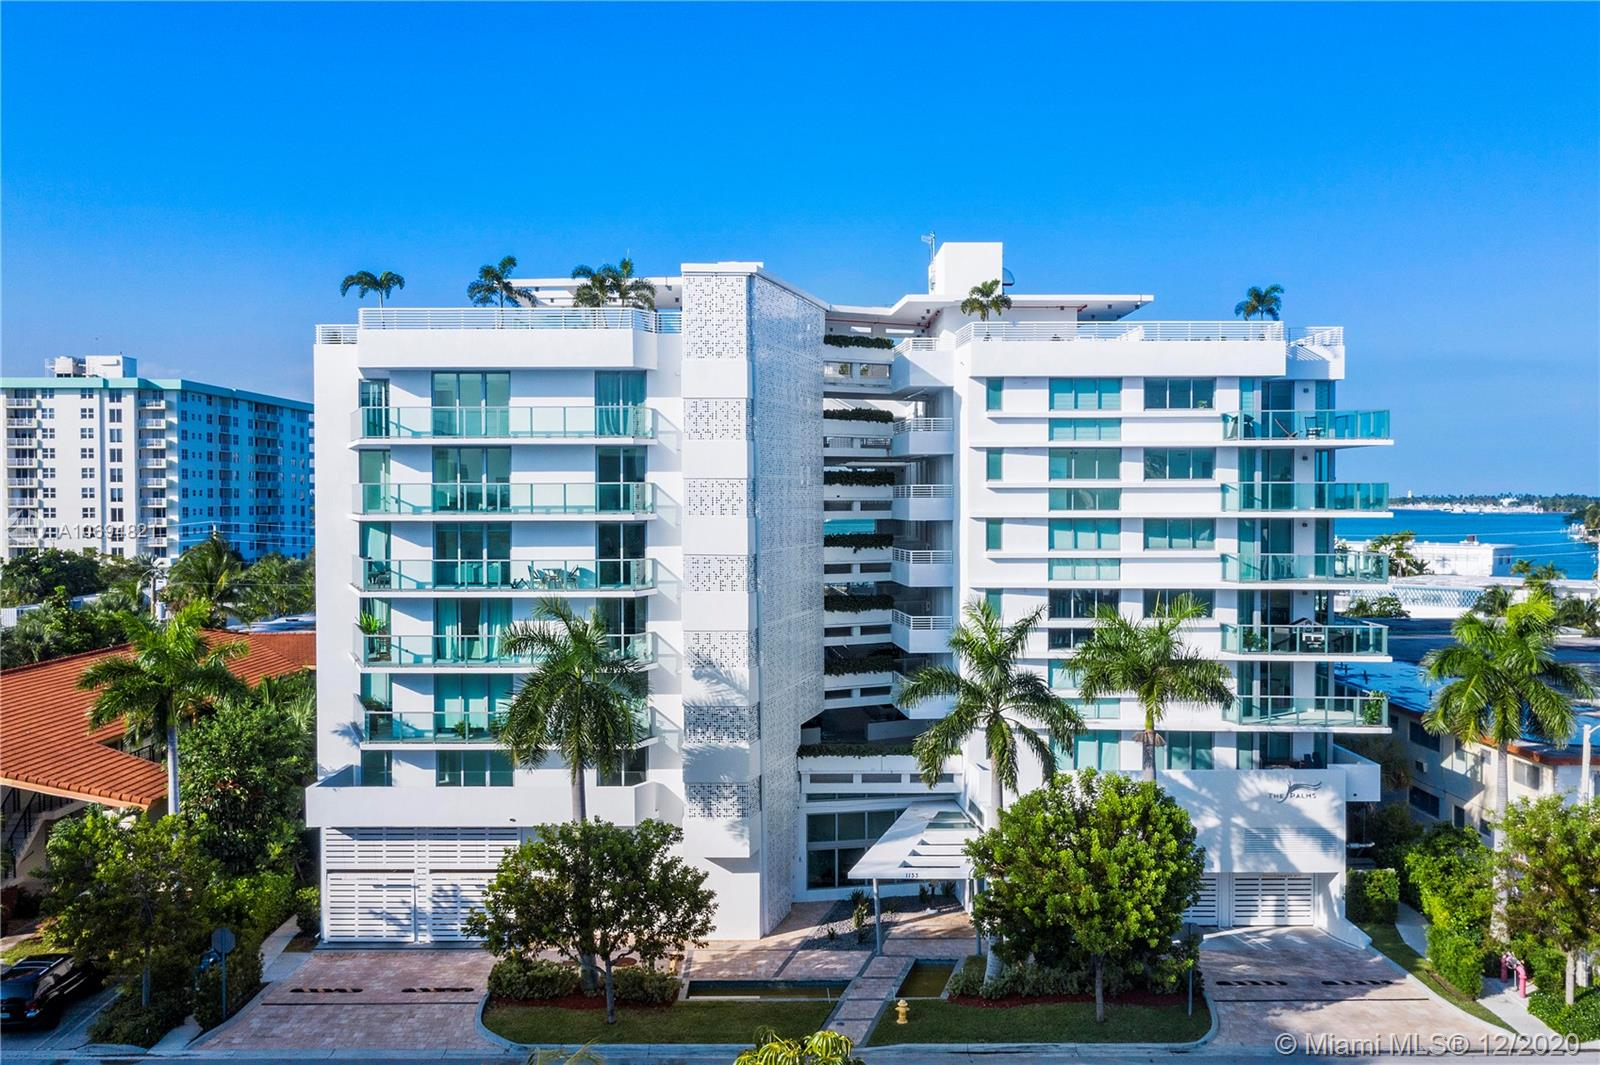 Brand new boutique style building in Bay Harbor Islands. Unit has 2 bedrooms and 2 bathrooms. Offers stainless steel appliances, tile throughout, washer and dryer inside, impact windows and wine cooler. Gorgeous views from the rooftop infinity pool and hot tub. Unit comes with 2 parking spaces (#28, #29) as well as a storage unit. Walking distance to shopping, places of worship, and A+ Bay Harbor K-8 Education Center. Great for investment opportunity. Rented through 1/31/22 at $2,900 per month